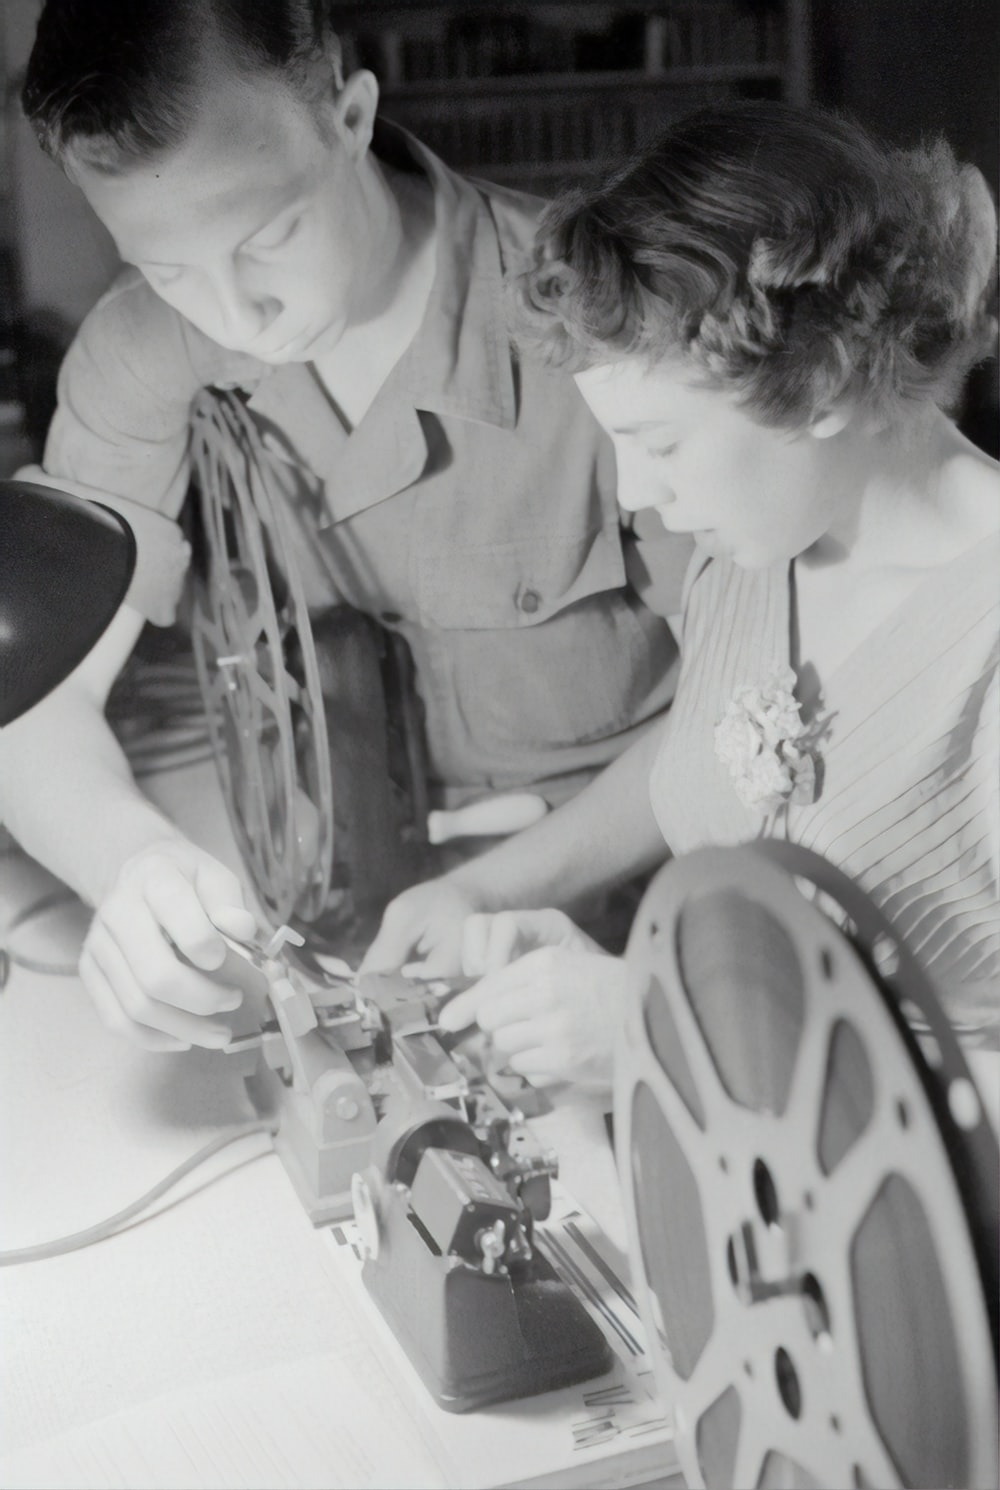 grayscale photography of man assisting woman while fixing film reel